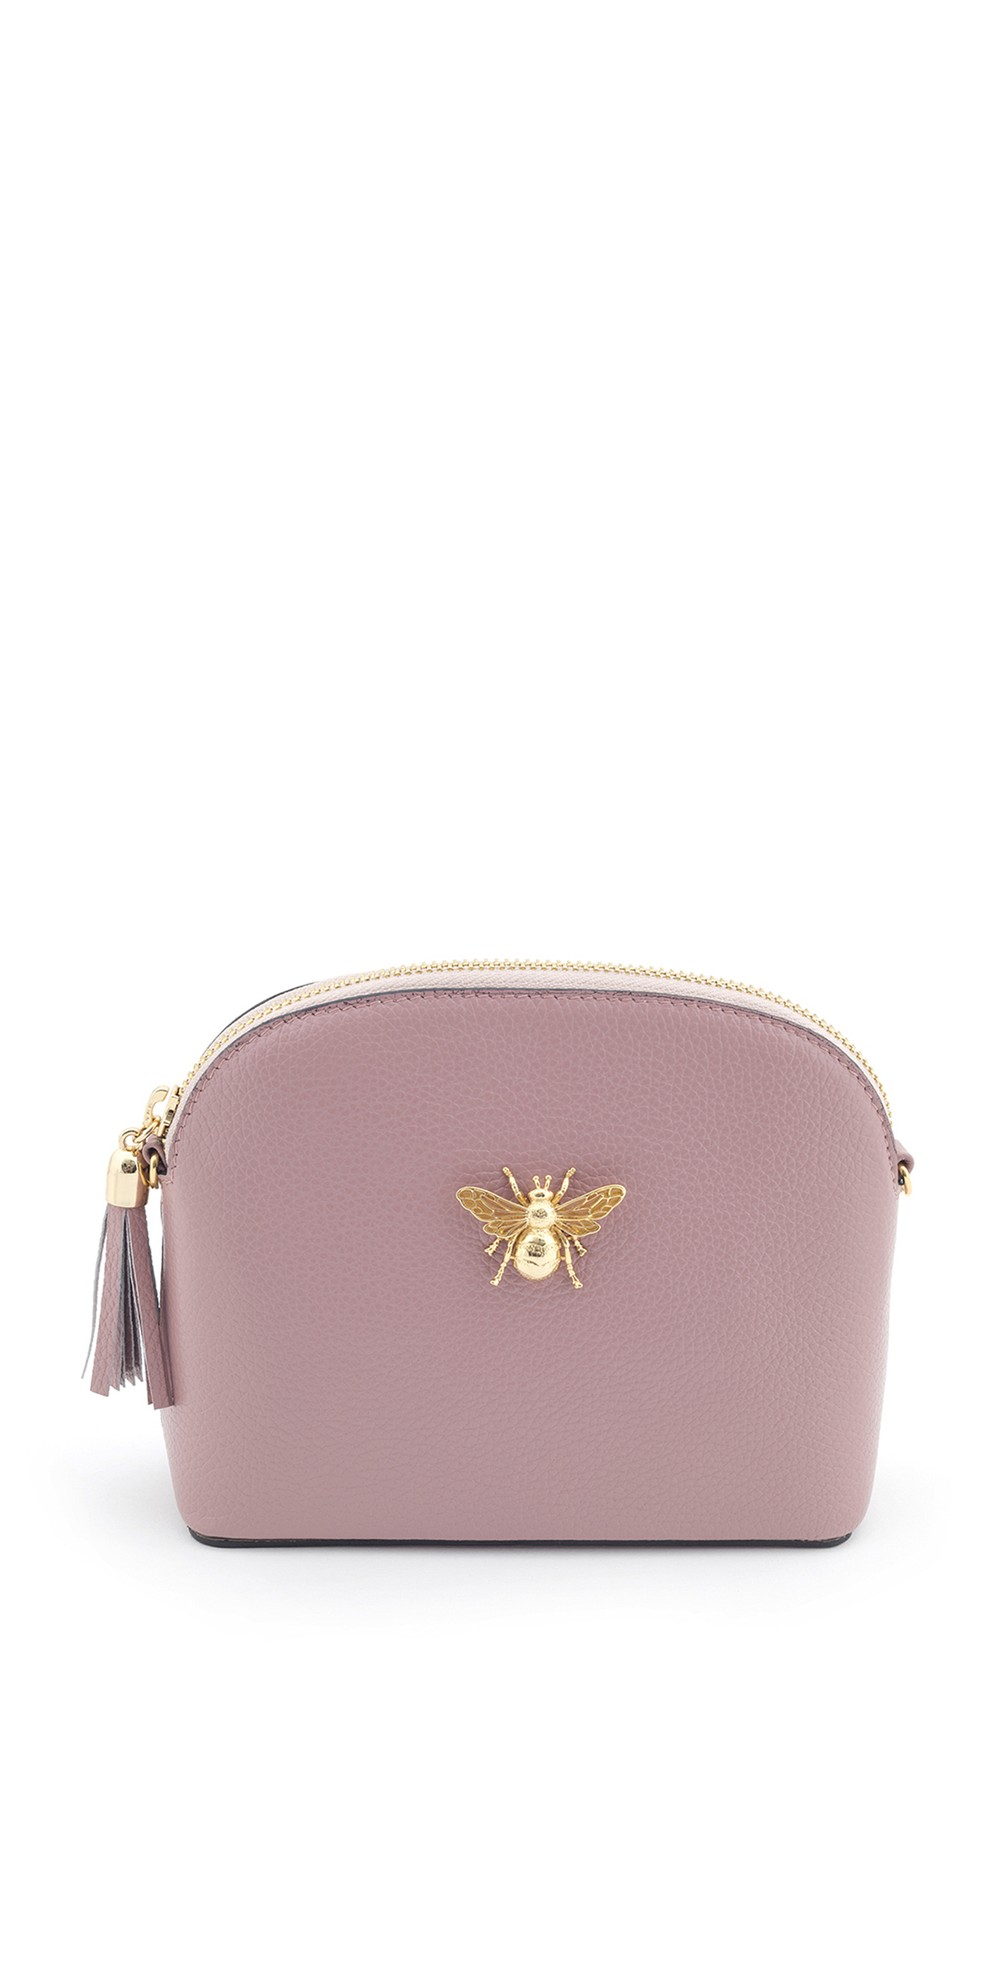 Honey Bee Cross Body Bag main image